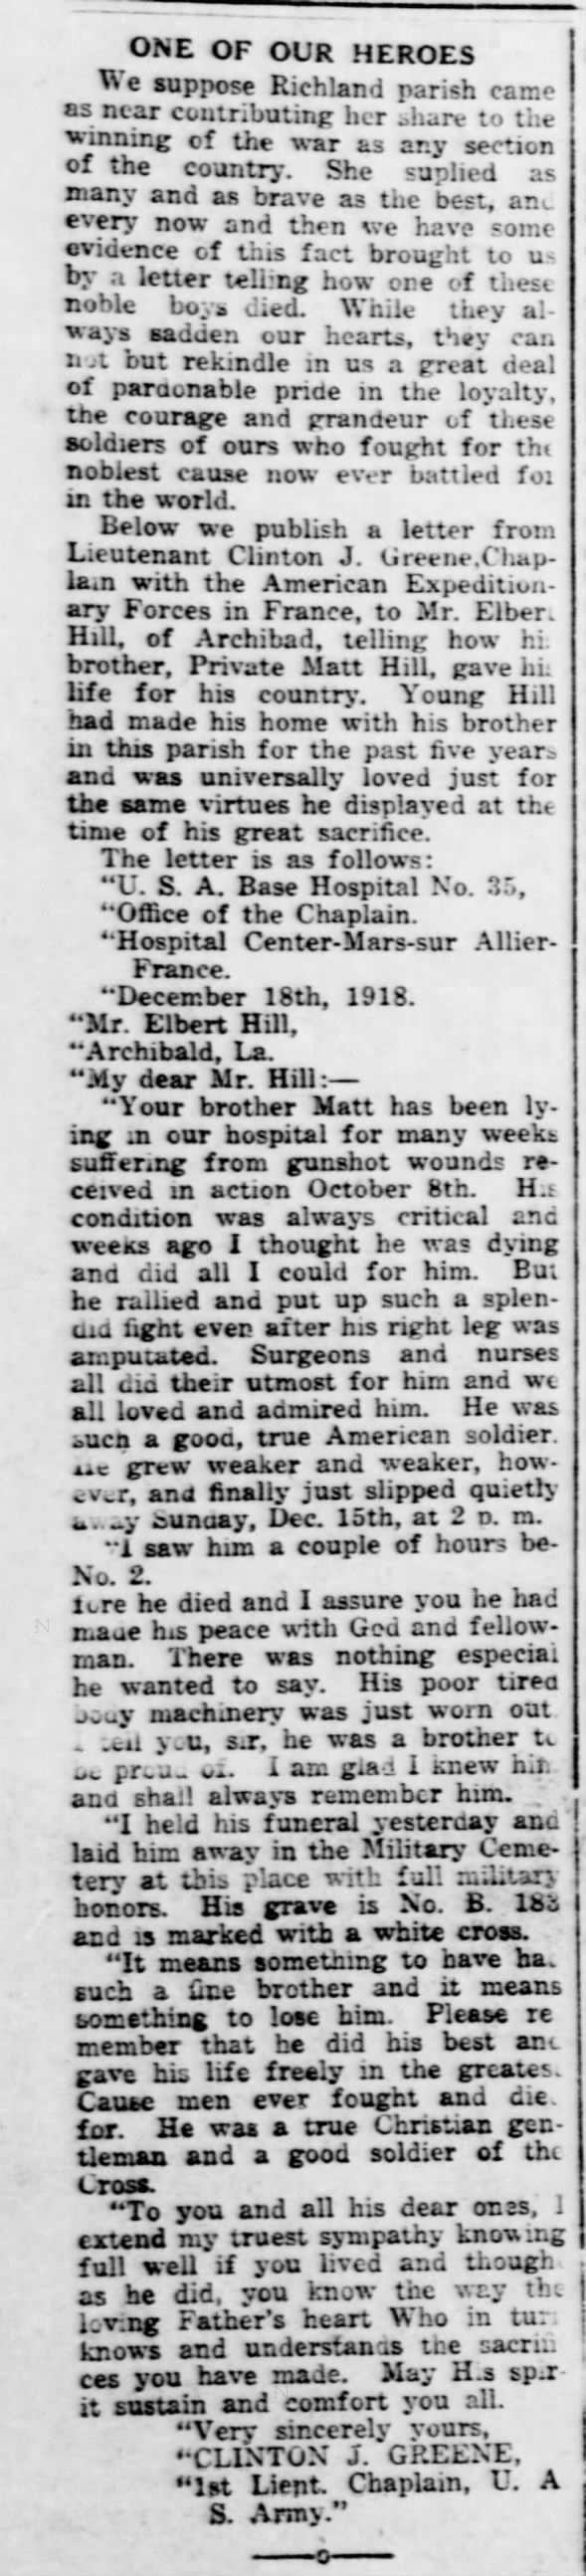 Pfc. Matt Hill, of Archibald, WWI Death